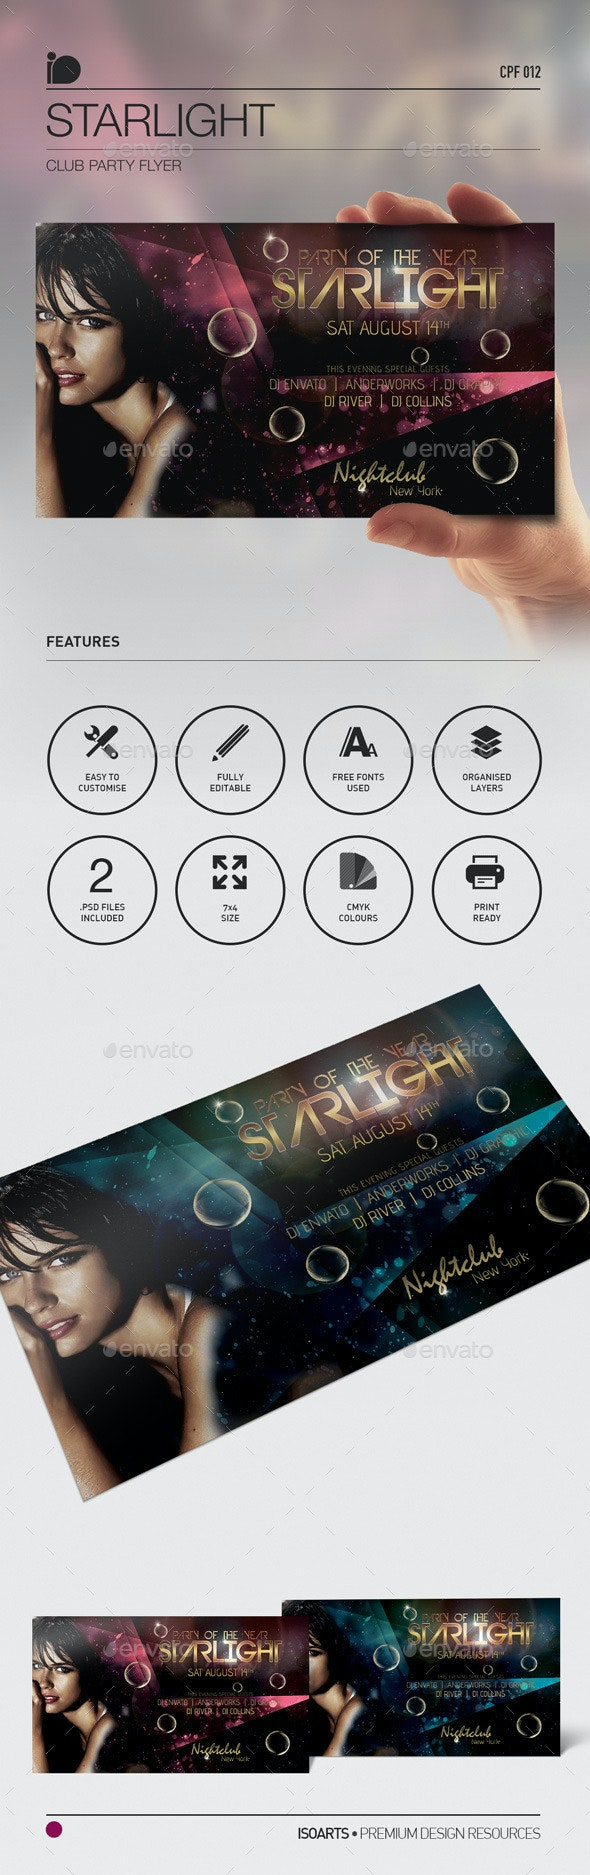 Club Party Flyer • Starlight - Clubs & Parties Events